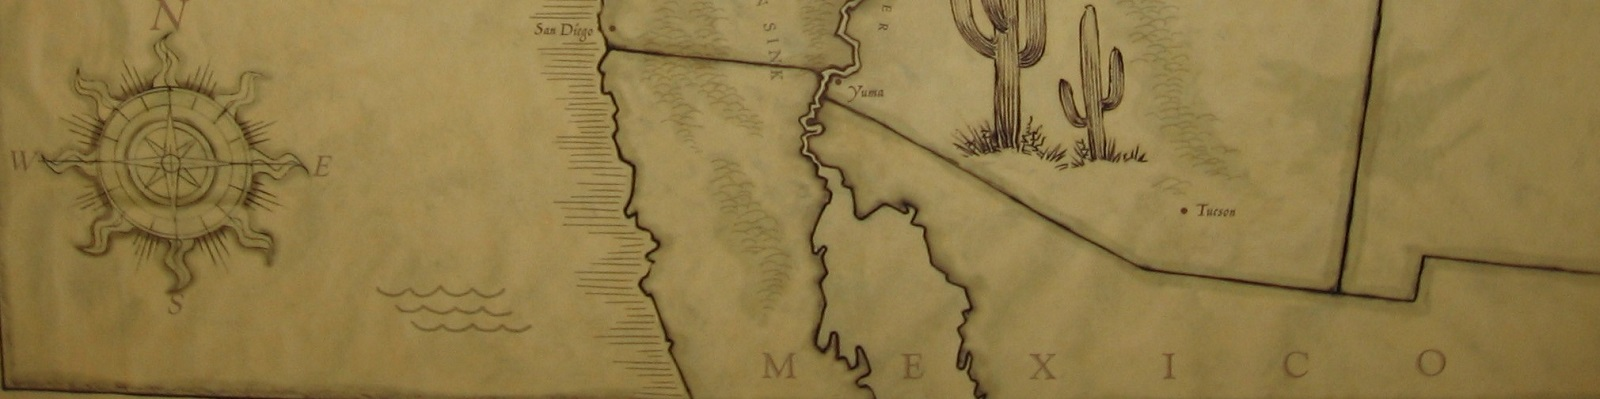 Map of US Southwest and Mexico